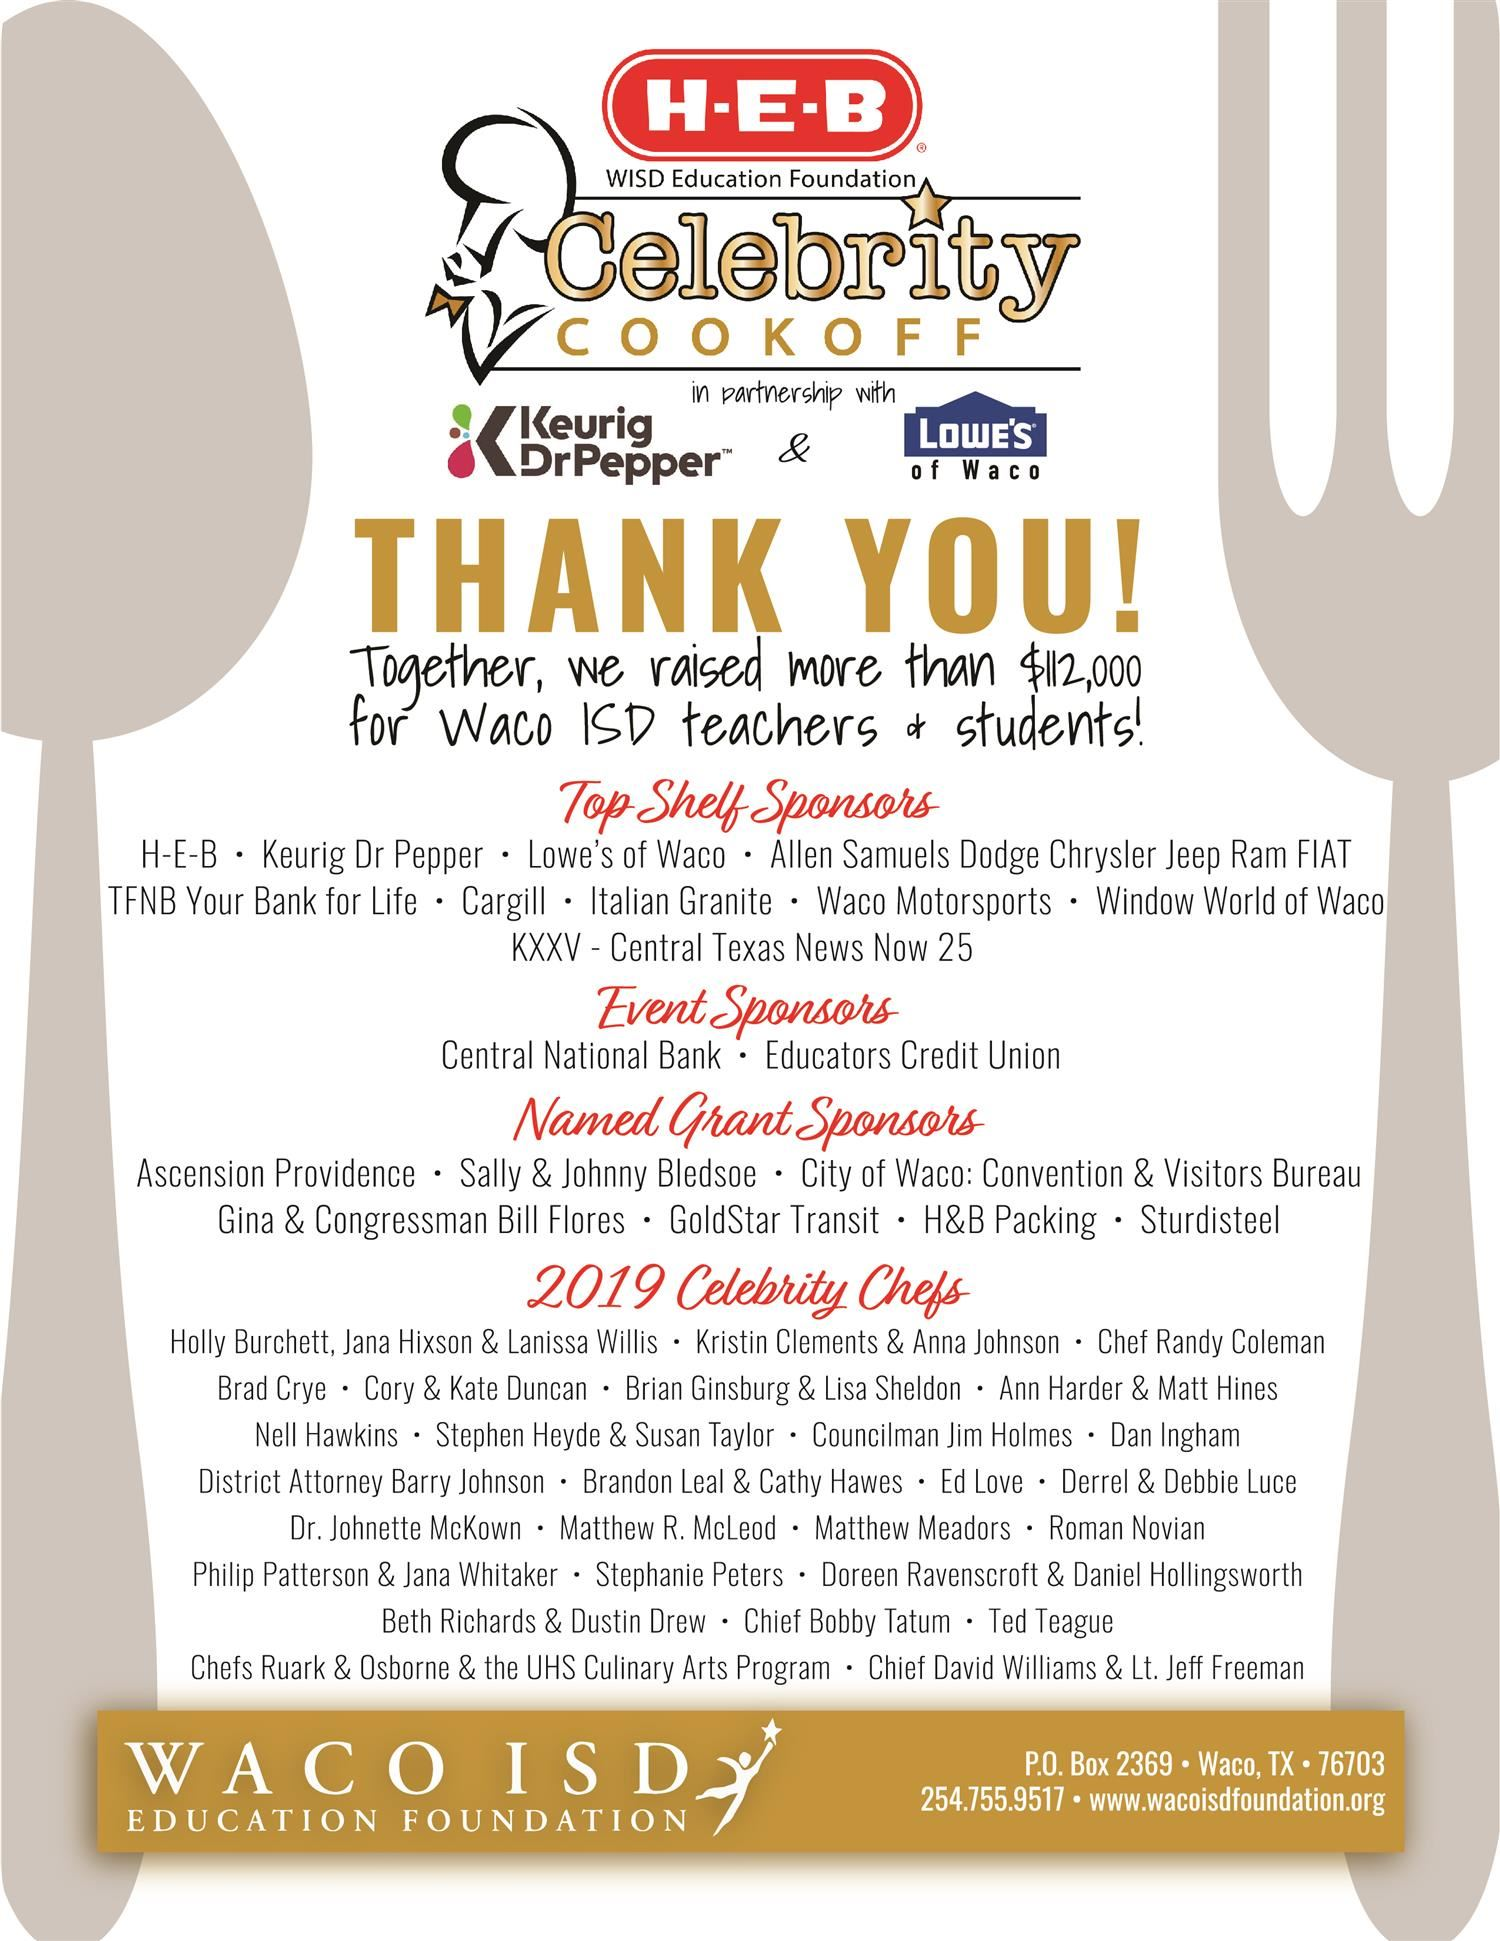 Heb Isd Calendar.H E B Celebrity Cookoff Cookoff Main